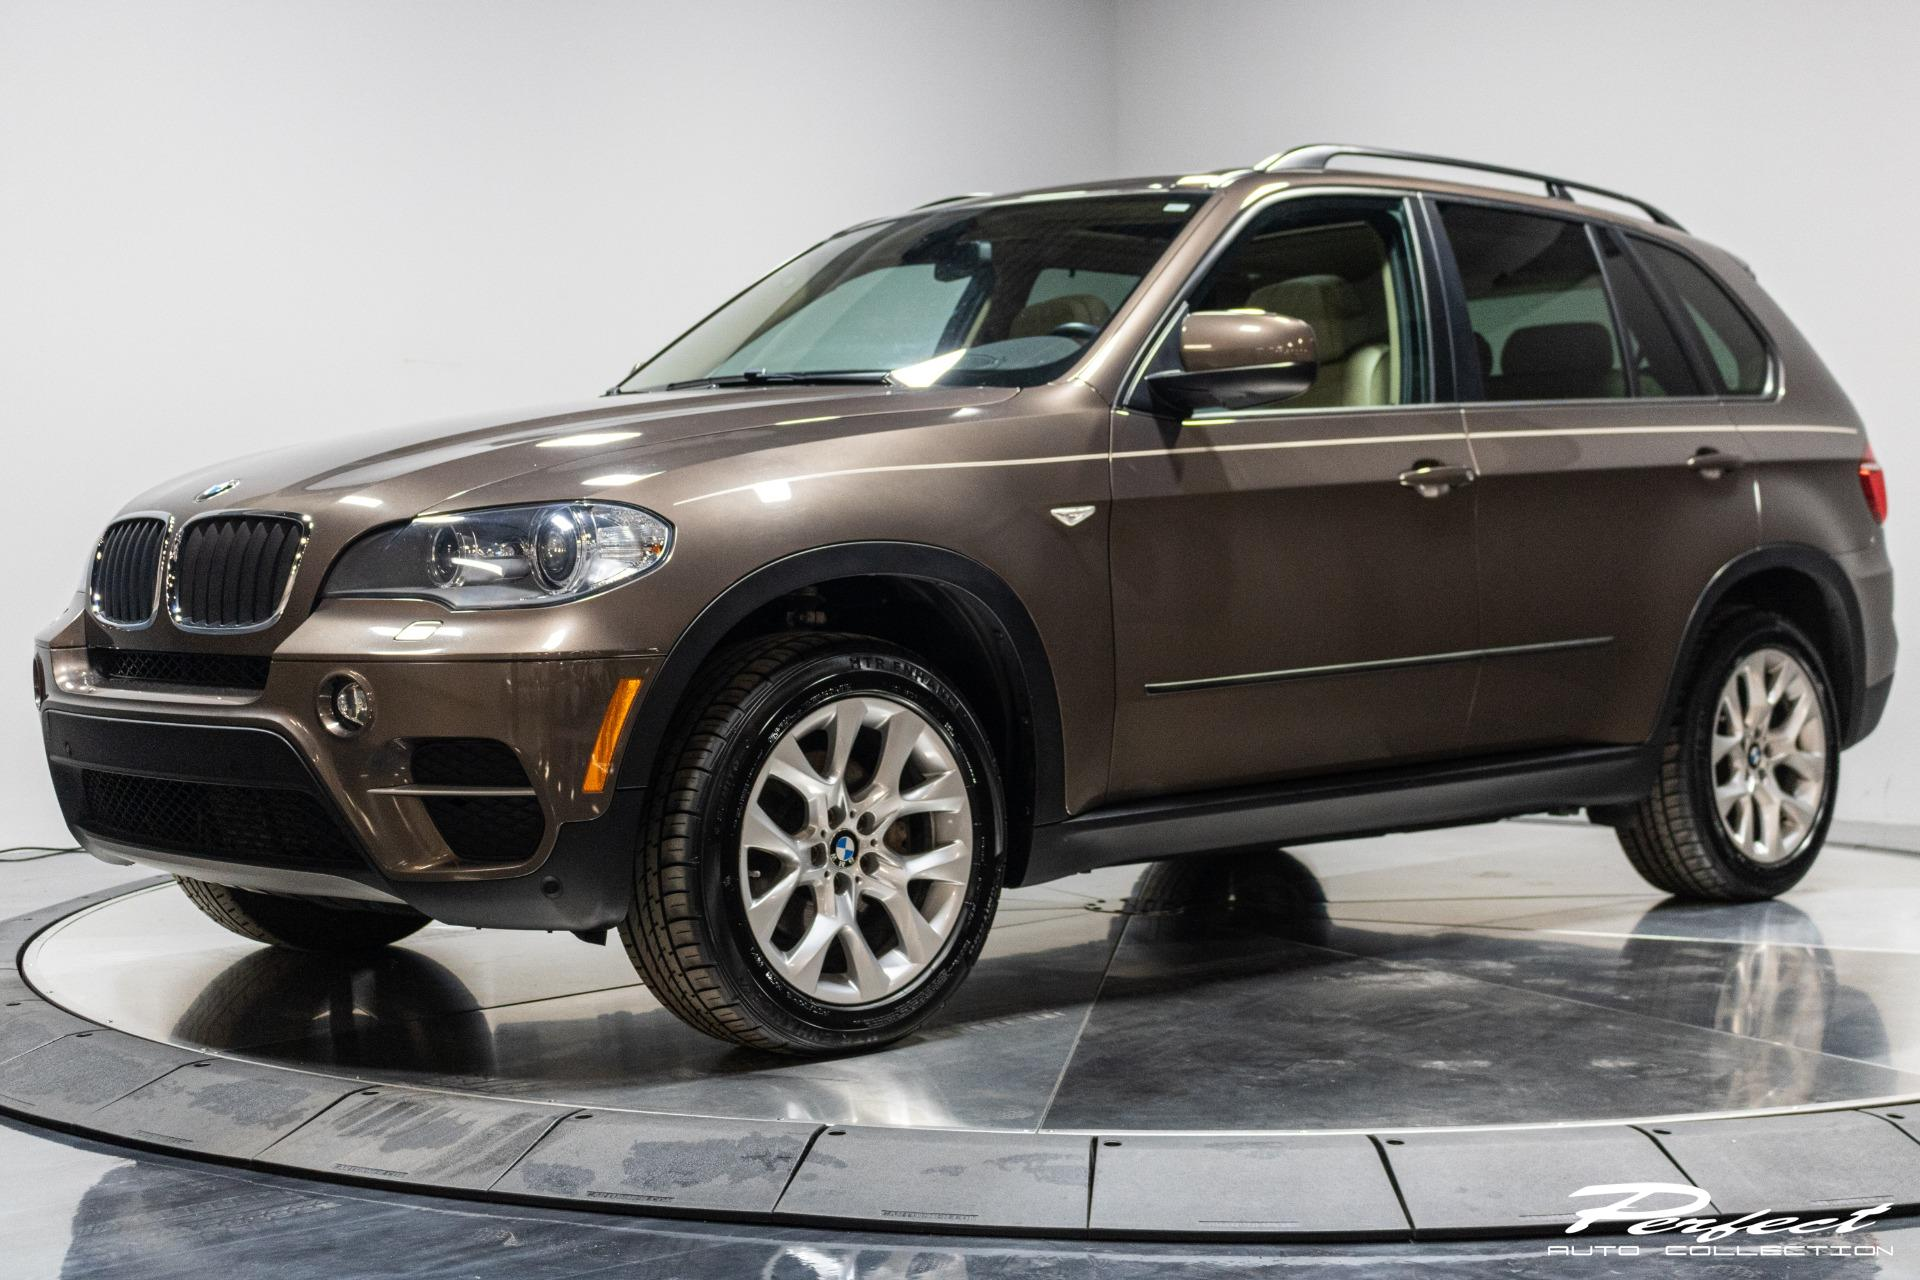 Used 2012 BMW X5 xDrive35i for sale Sold at Perfect Auto Collection in Akron OH 44310 1